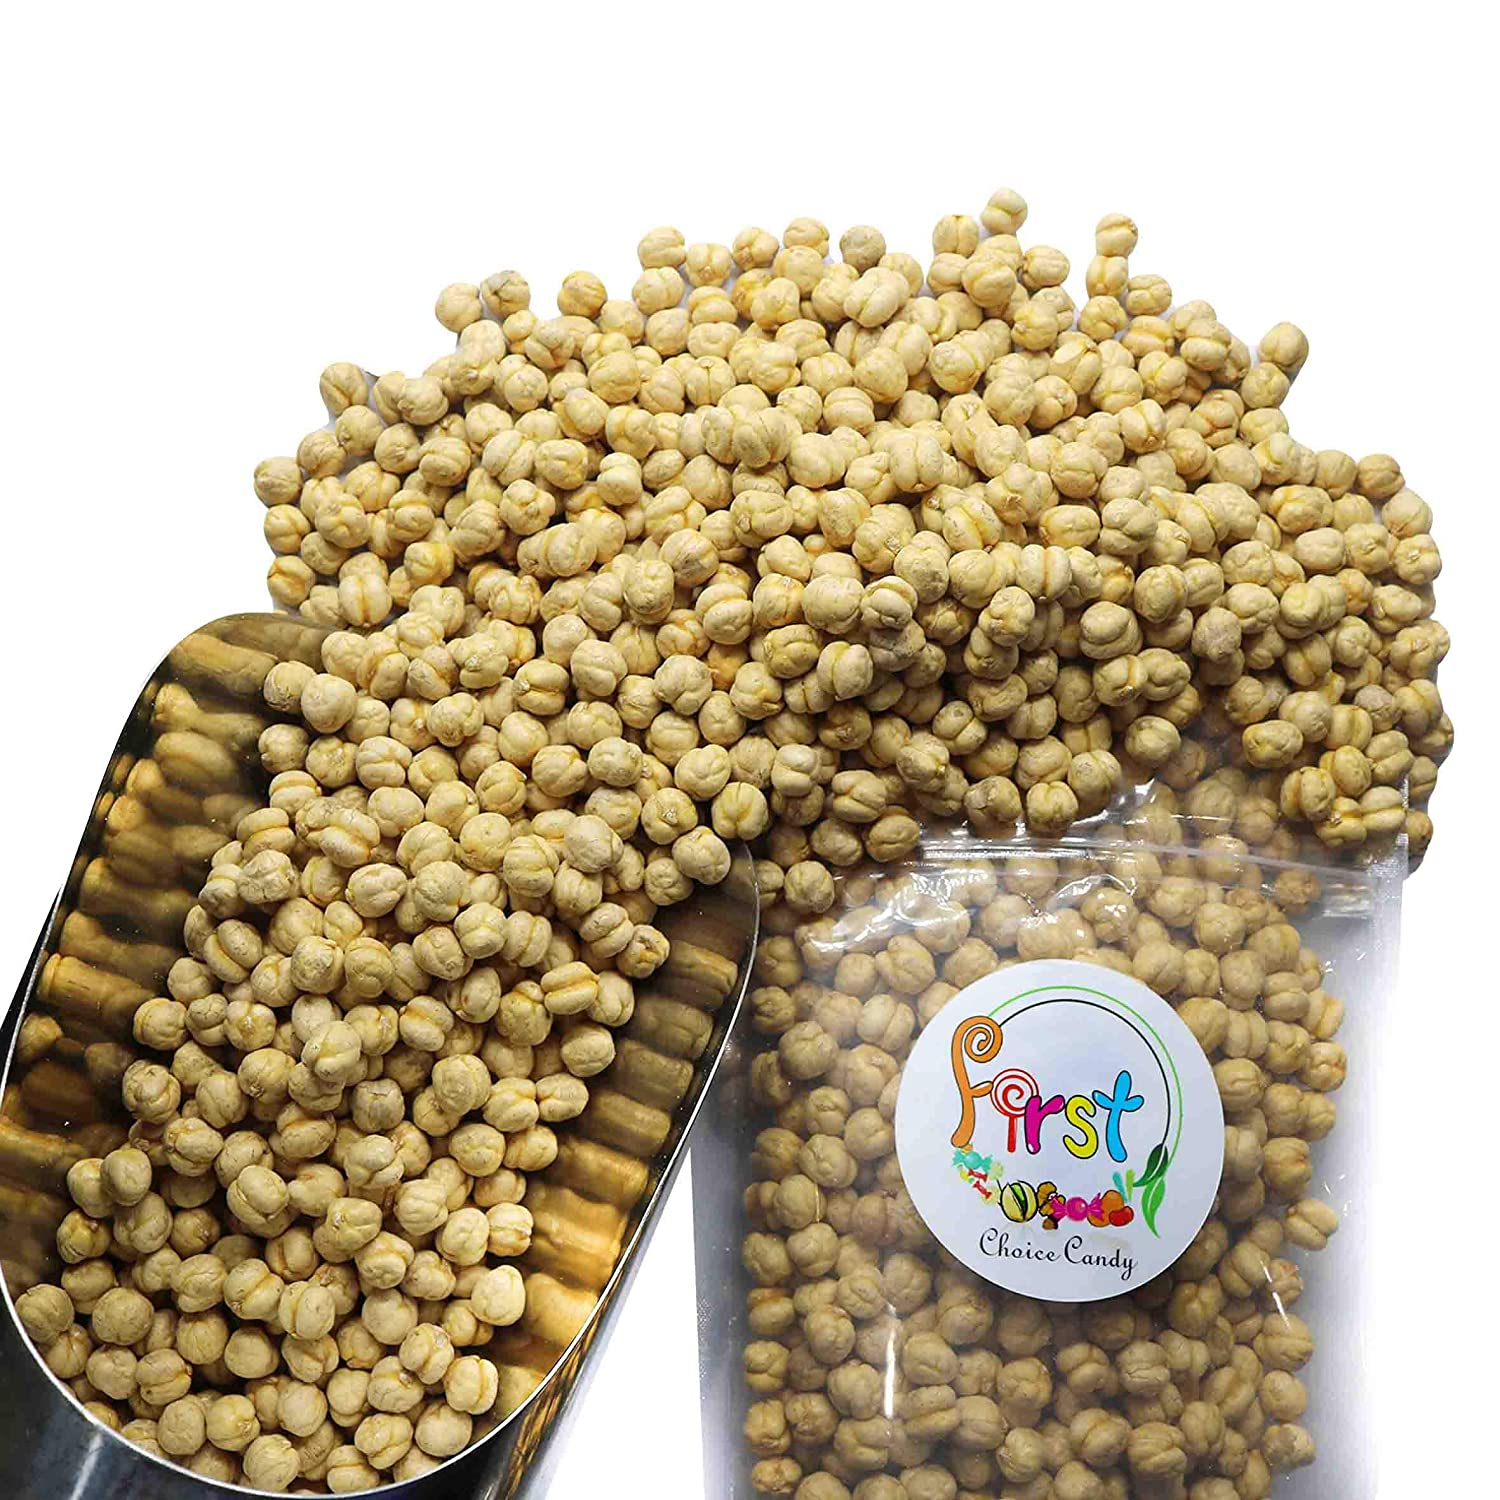 FirstChoiceCandy Fashionable Max 42% OFF Yellow Chickpeas LB 5